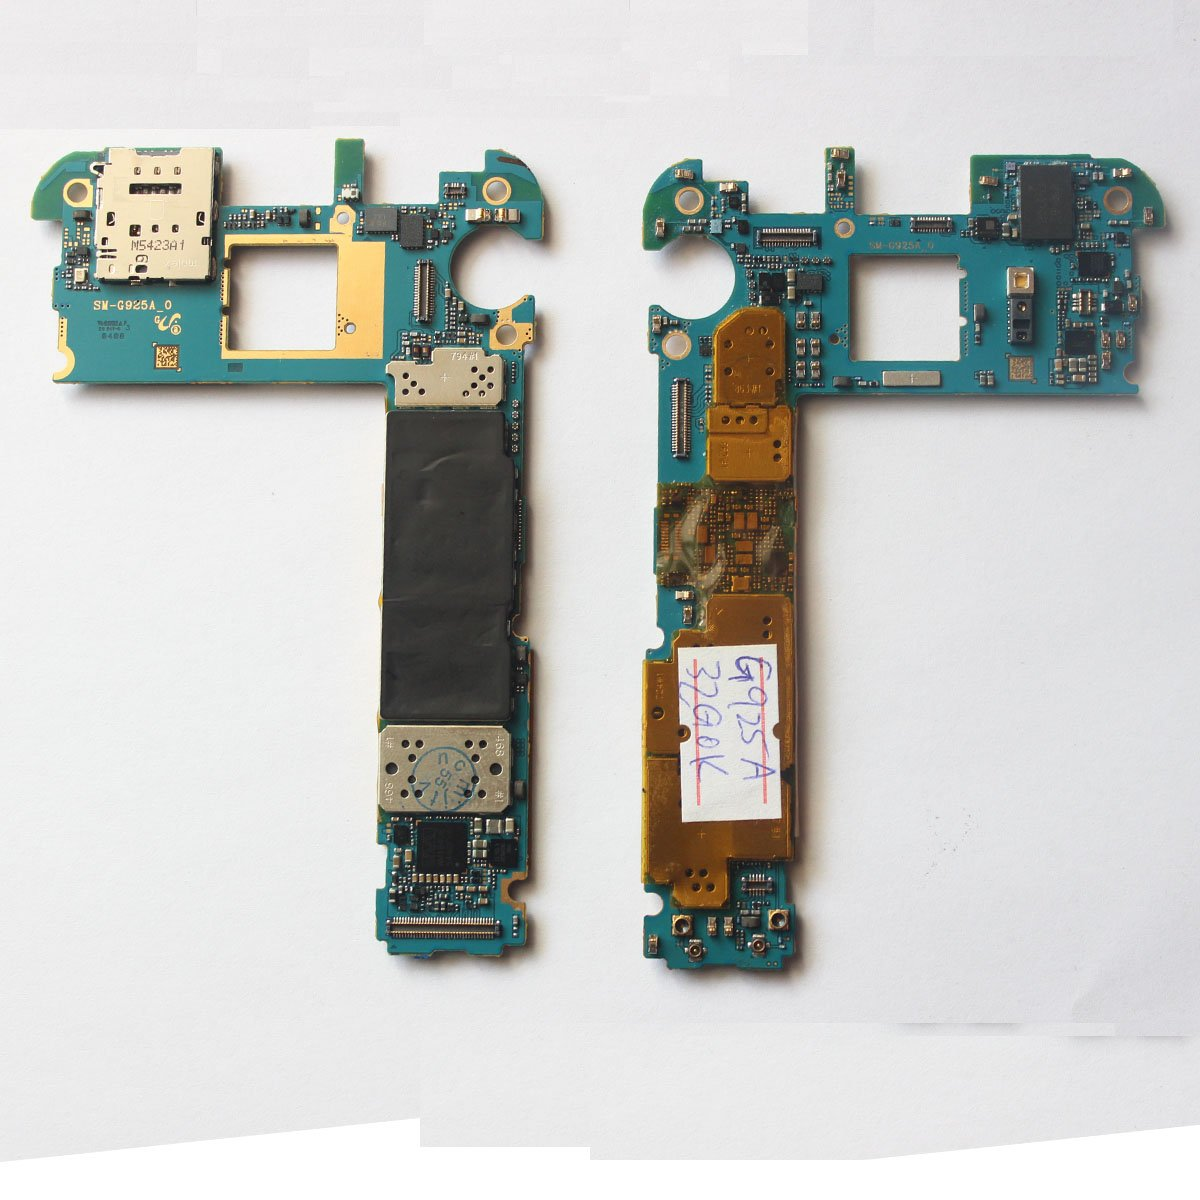 Main Motherboard For Samsung Galaxy S6 Edge G925a 32gb Circuit Board Repair Tools Unlocked Cell Phones Accessories